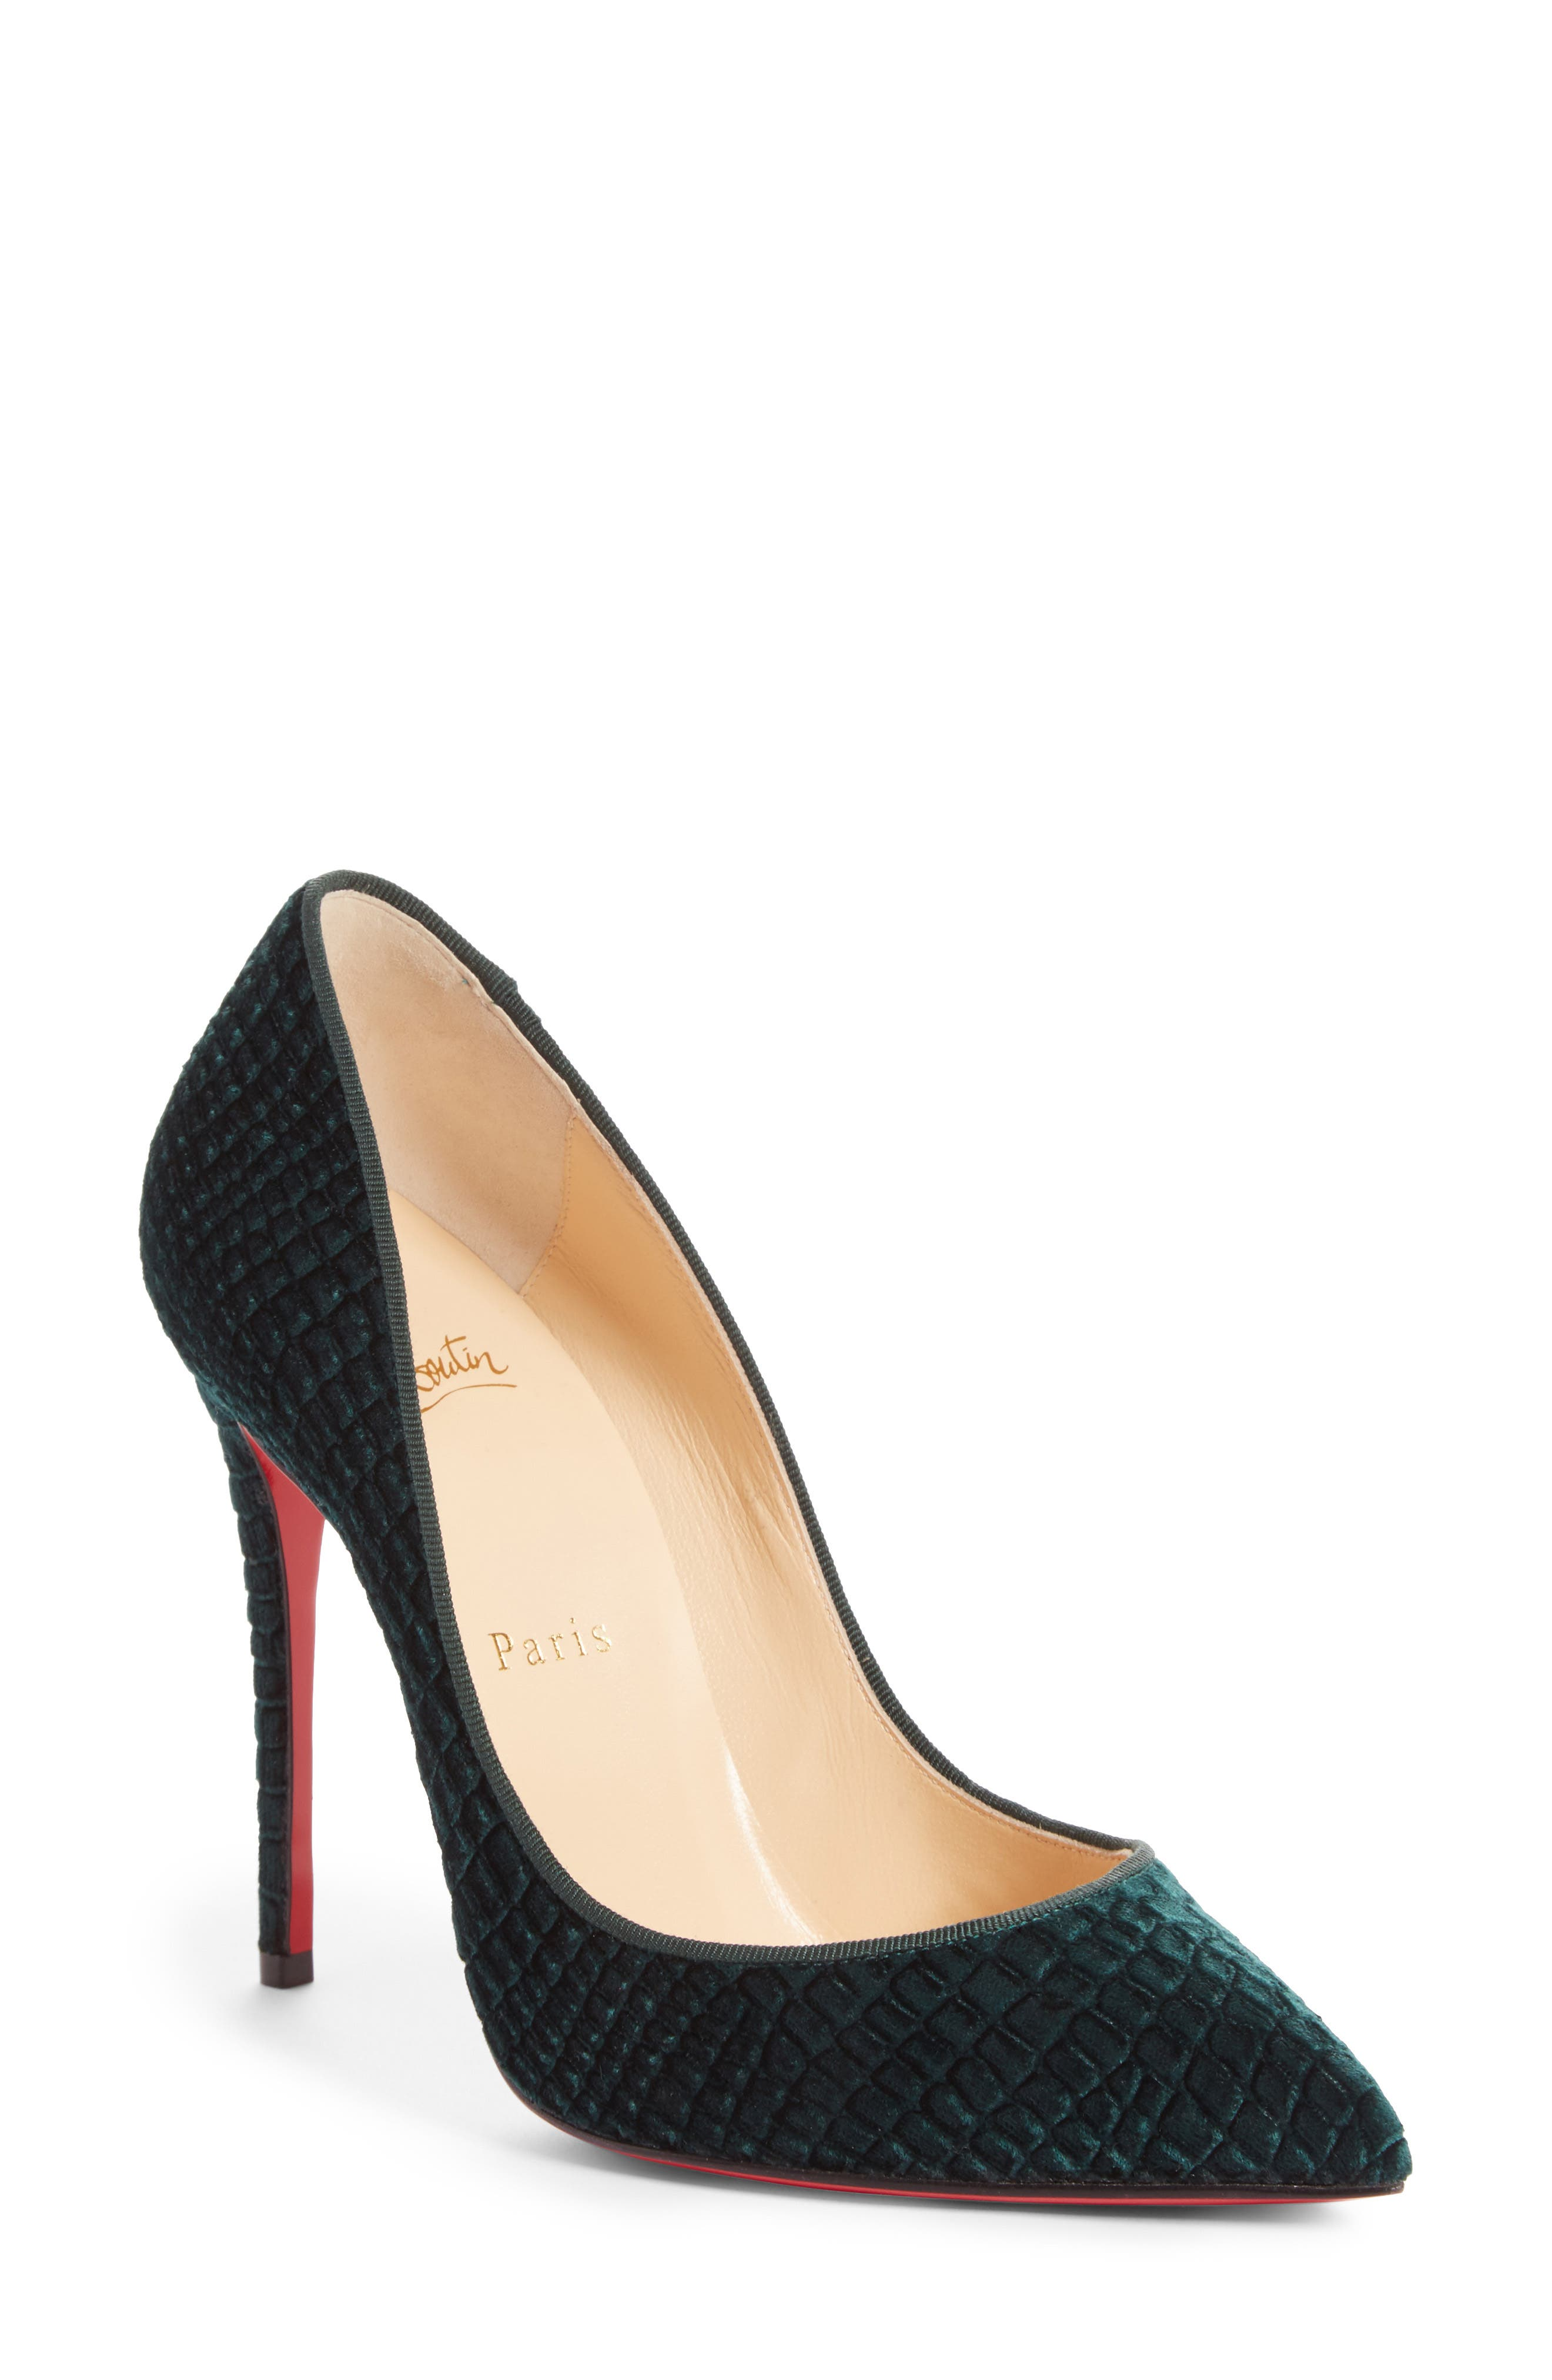 Pigalle Follies Pointy Toe Pump,                             Main thumbnail 1, color,                             300